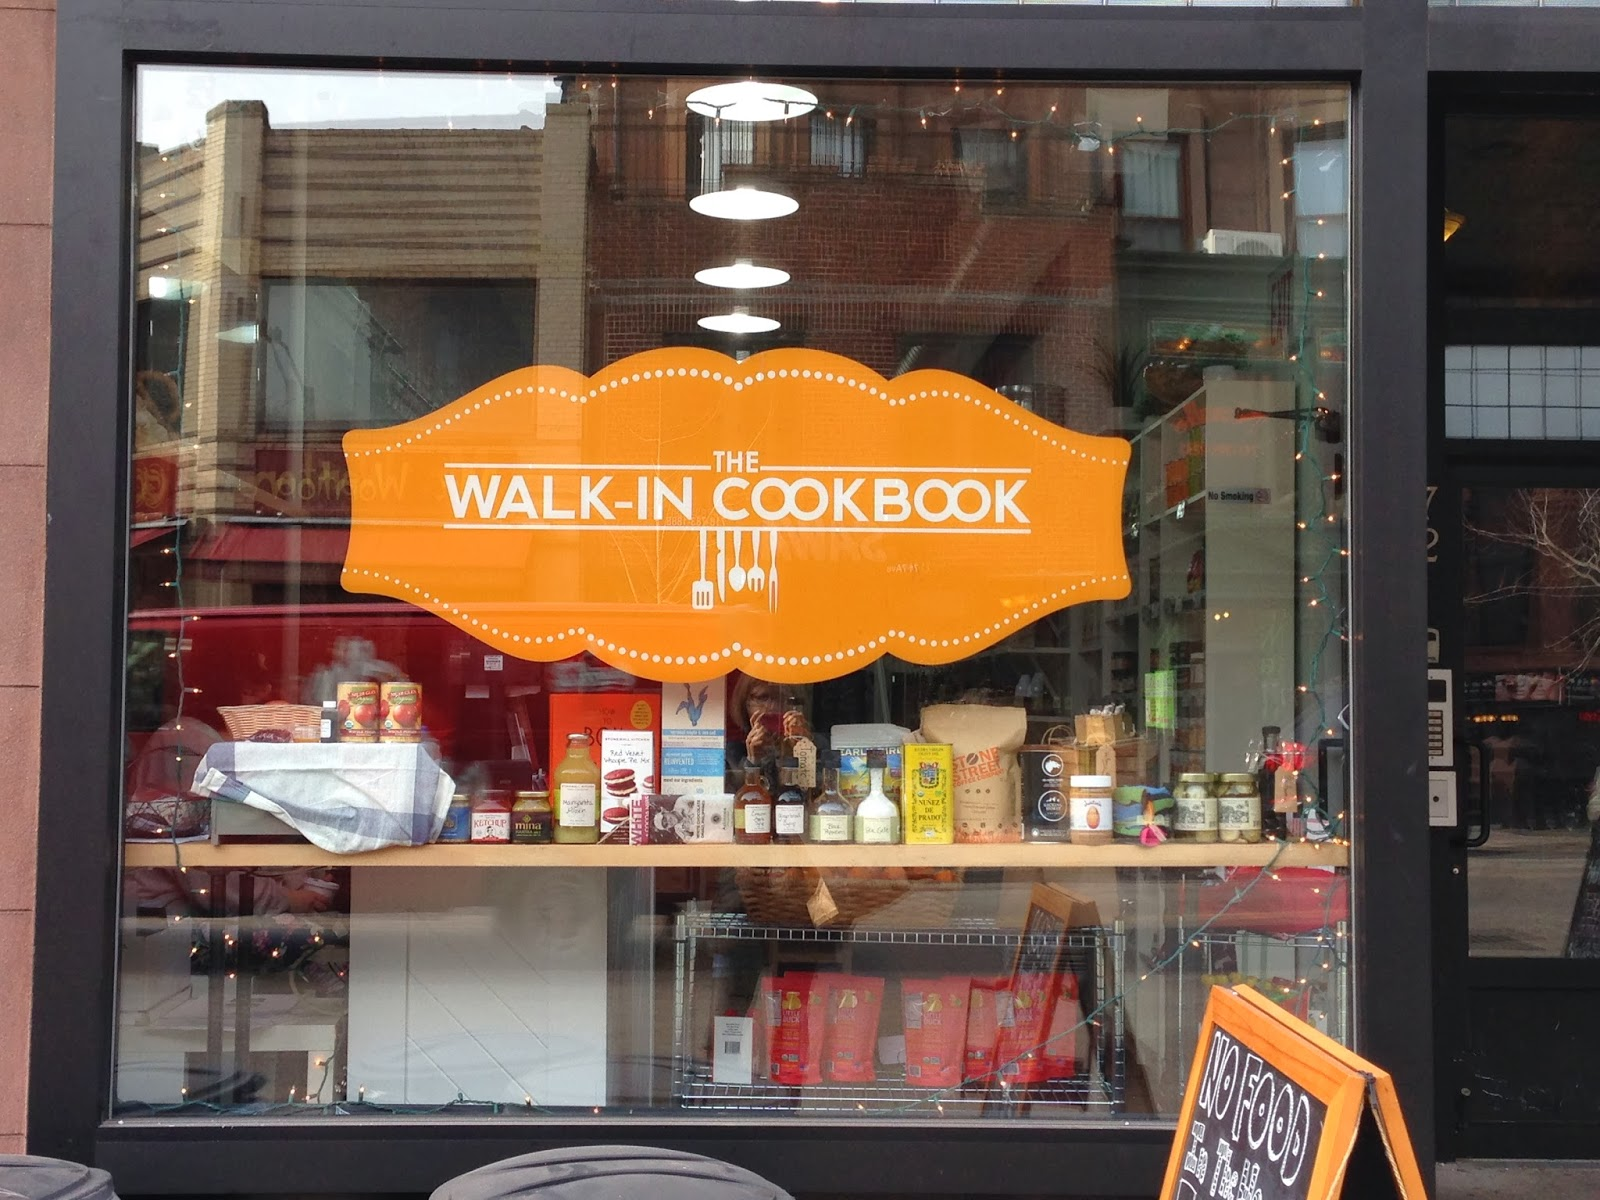 Blue apron park slope - Located On 7th Ave In Park Slope The Walk In Cookbook Is A Storefront Biz Offering The Same Sort Of Service As Online You Choose Recipes You D Like To